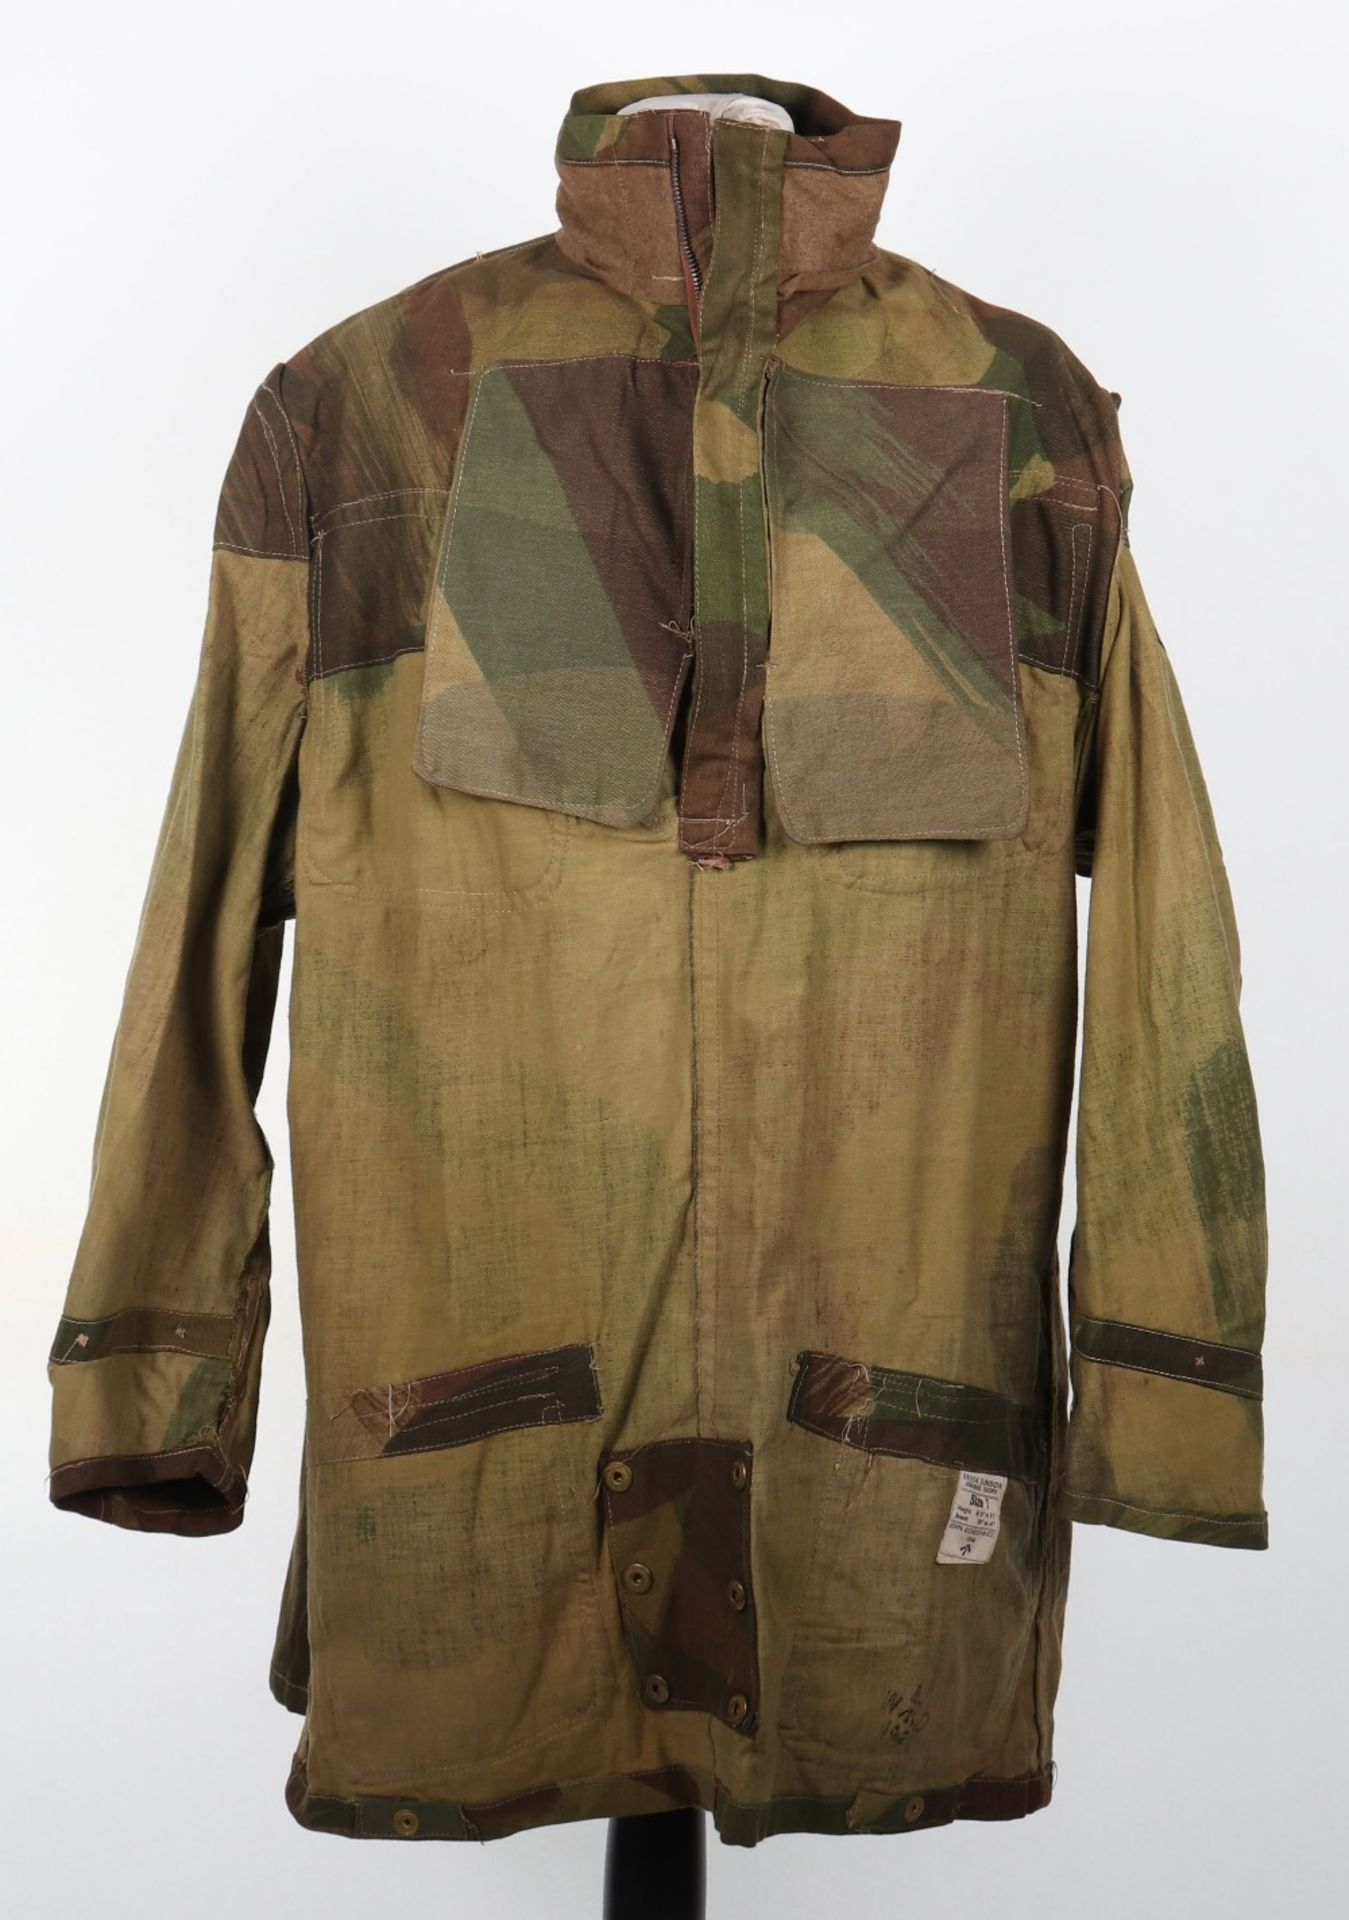 Mint Condition Large Size Airborne Forces Denison Smock - Image 10 of 17